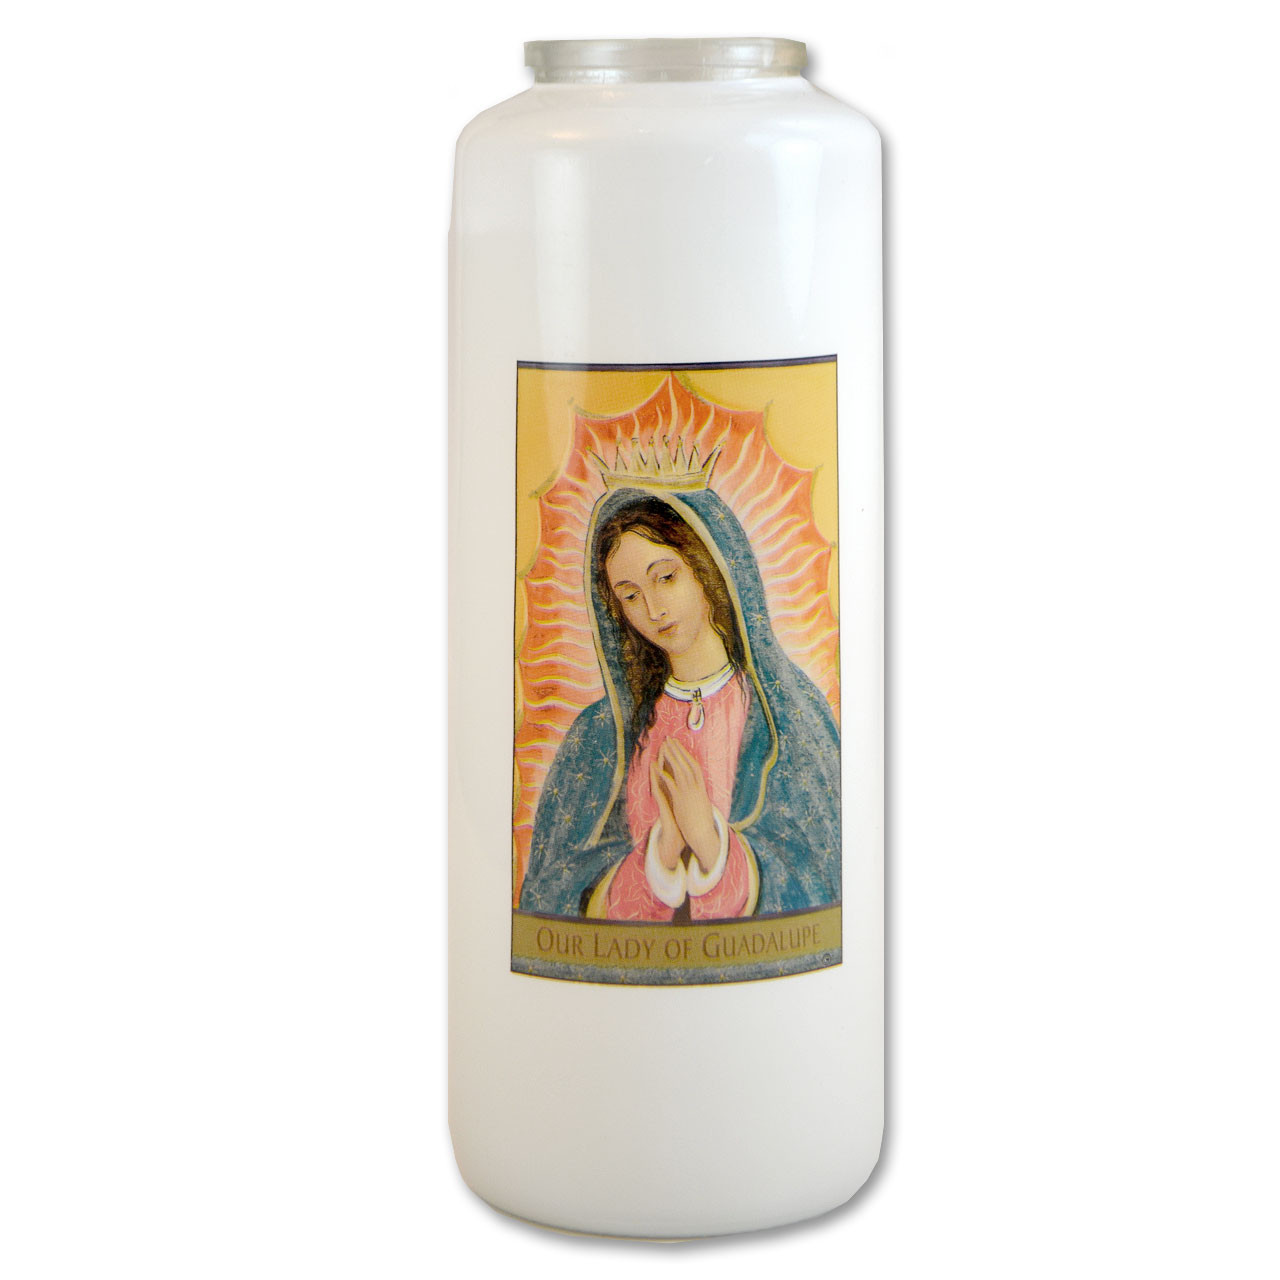 Our Lady of Guadalupe Votive Candle - 6 day